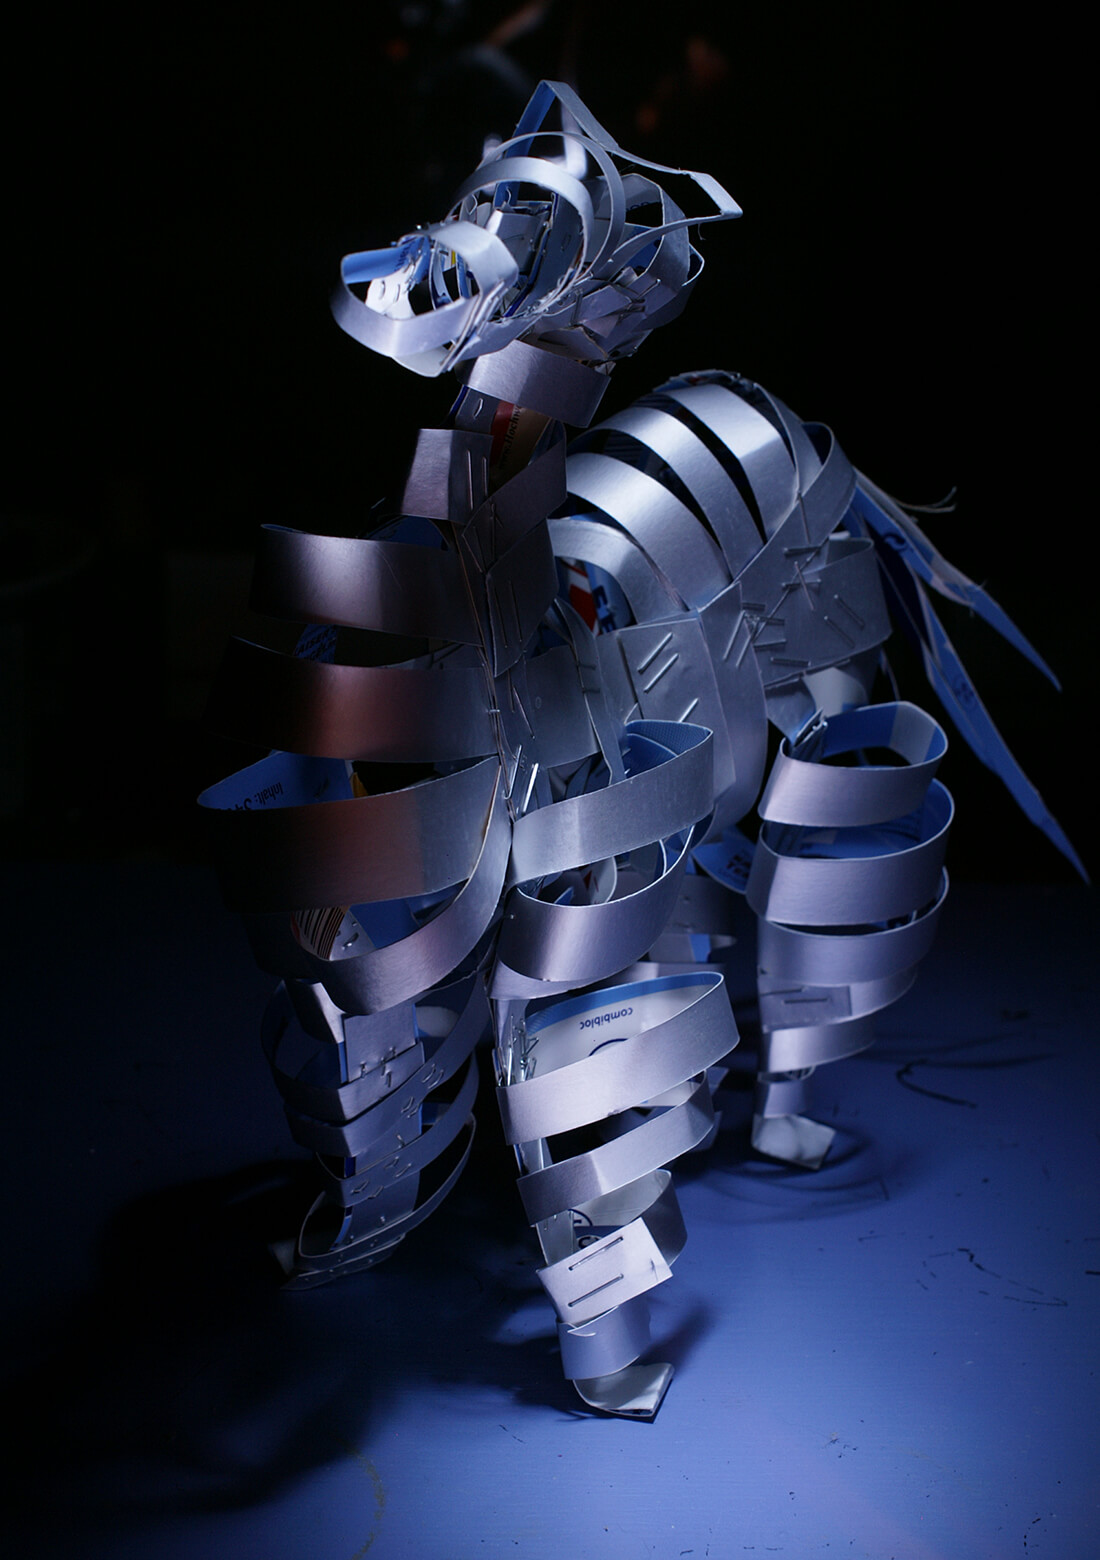 3d Kunstobject - Horse of Troy belicht met zaklamp